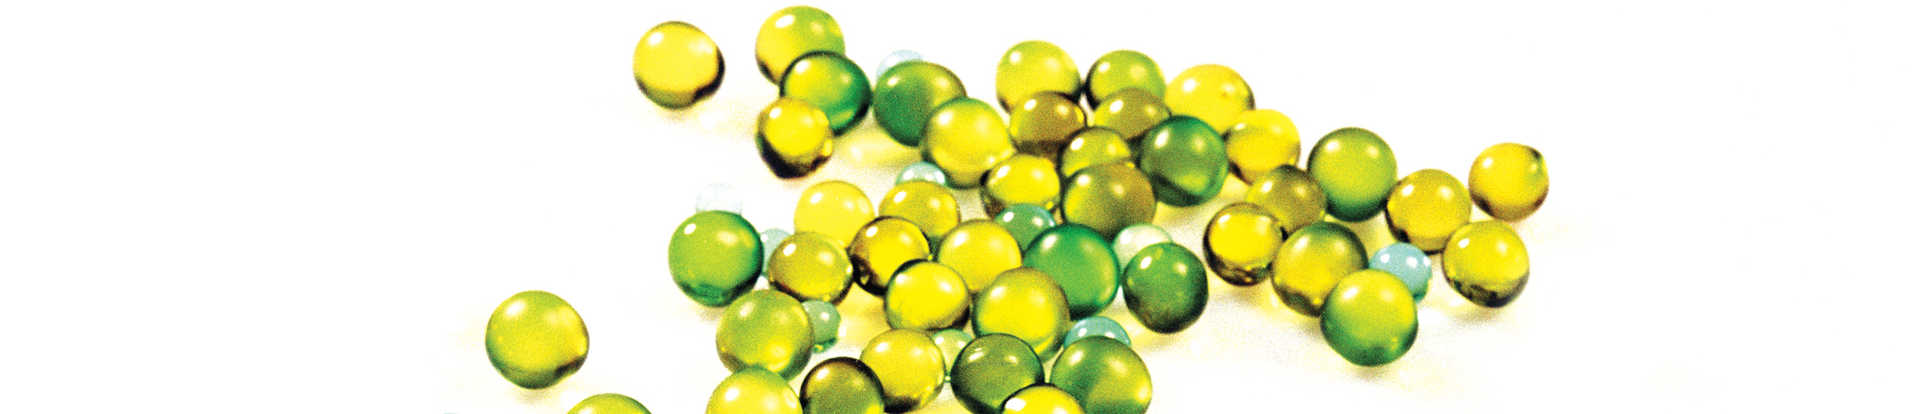 Green, yellow, and blue round orbs spilling across white surface